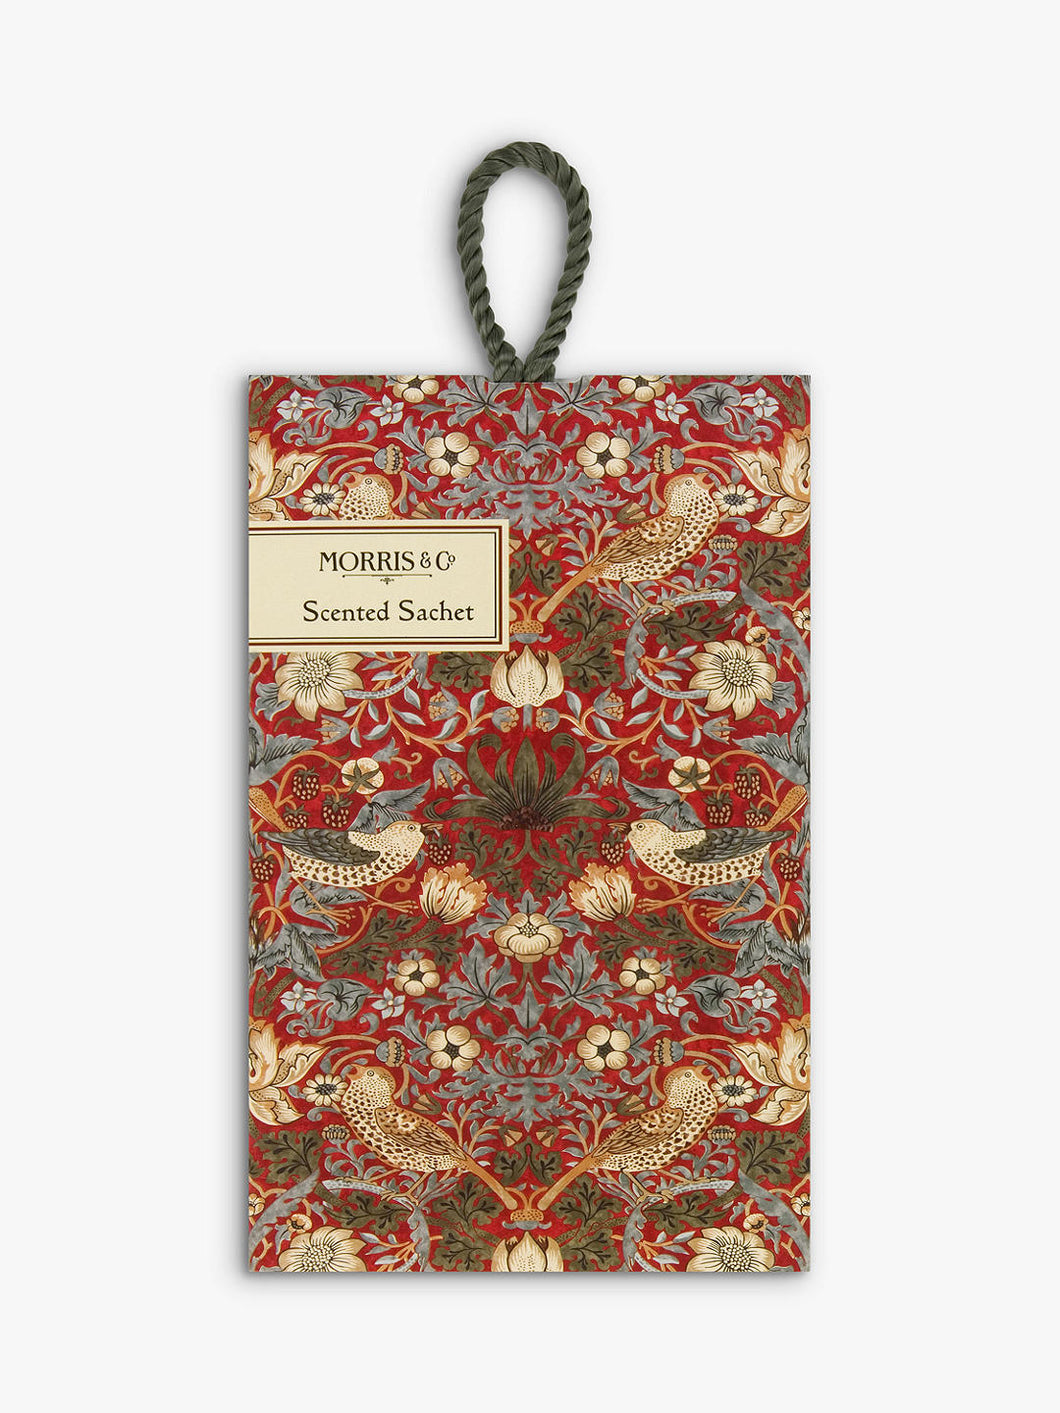 Morris & Co. Strawberry Thief Scented Sachet